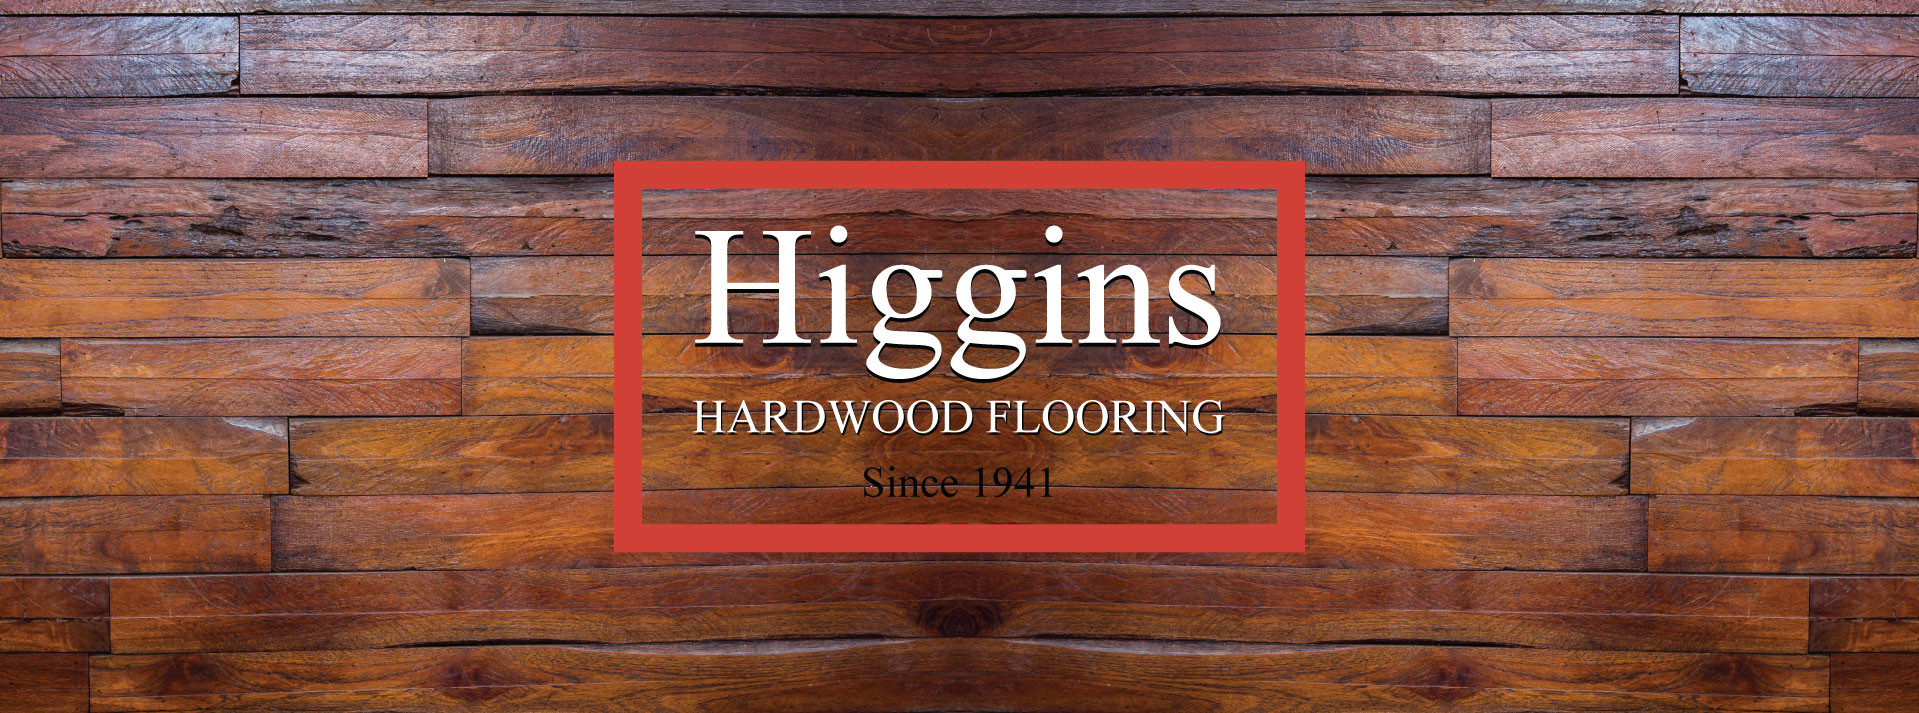 a hardwood floor specialist of higgins hardwood flooring in peterborough oshawa lindsay ajax pertaining to office hours